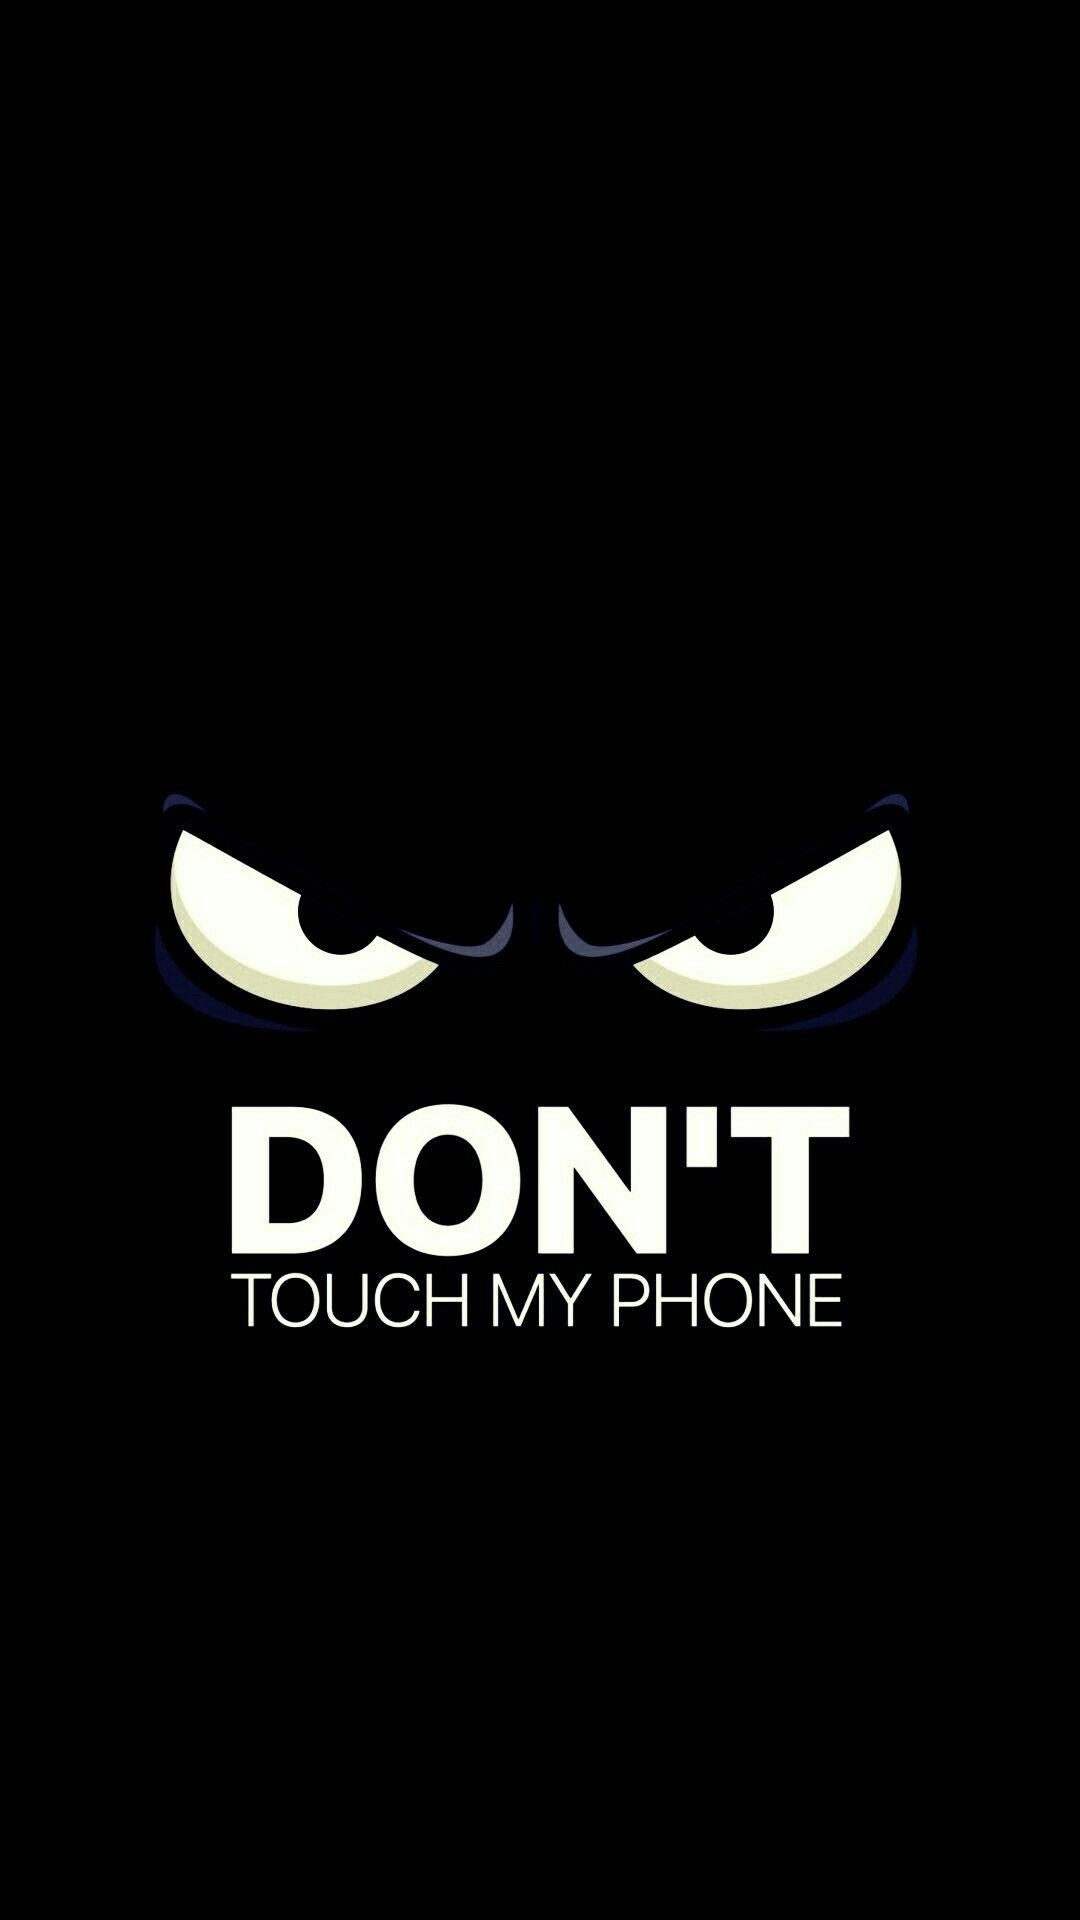 don't touch my phone | wallpapers | pinterest | phone, wallpaper and